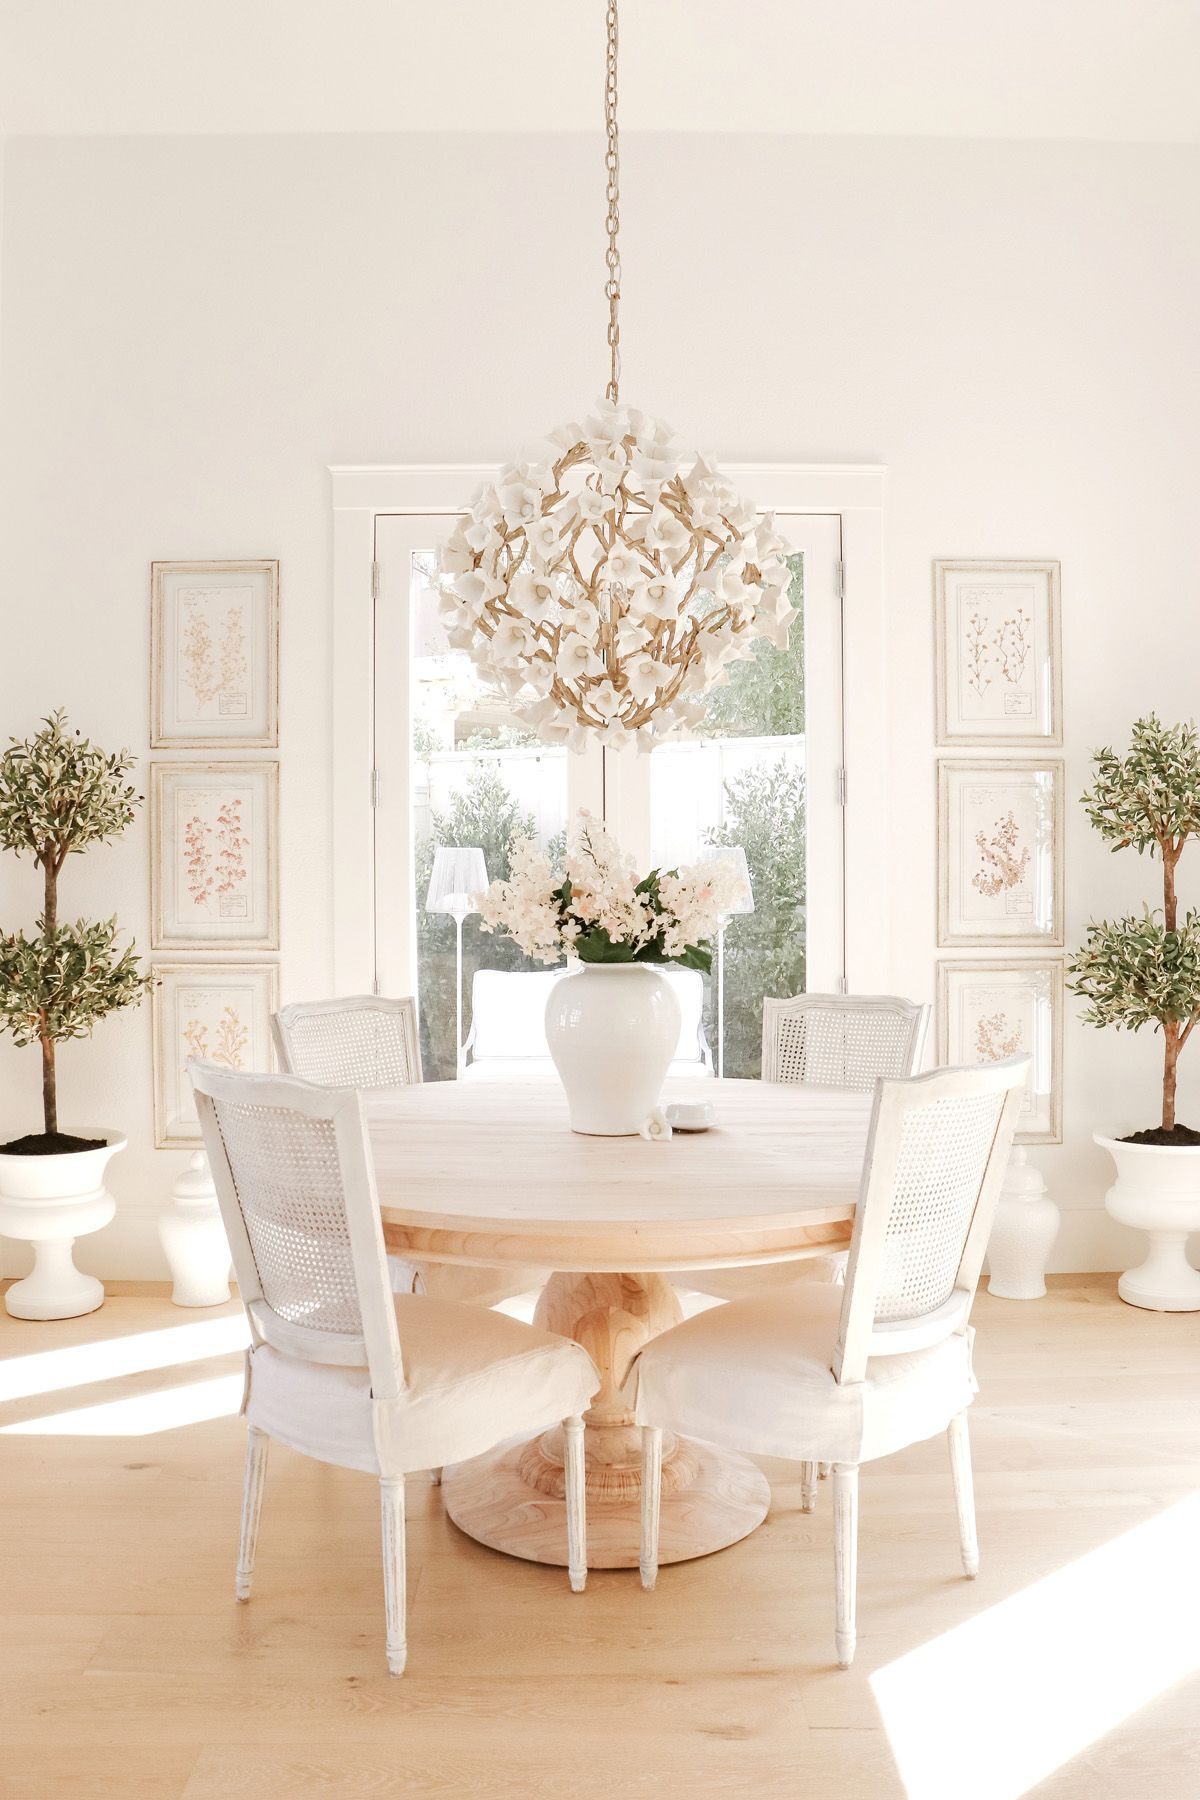 New French Inspired Pedestal Dining Table Kristywicks Com White Dining Room Dining Room Inspiration Modern Dining Room